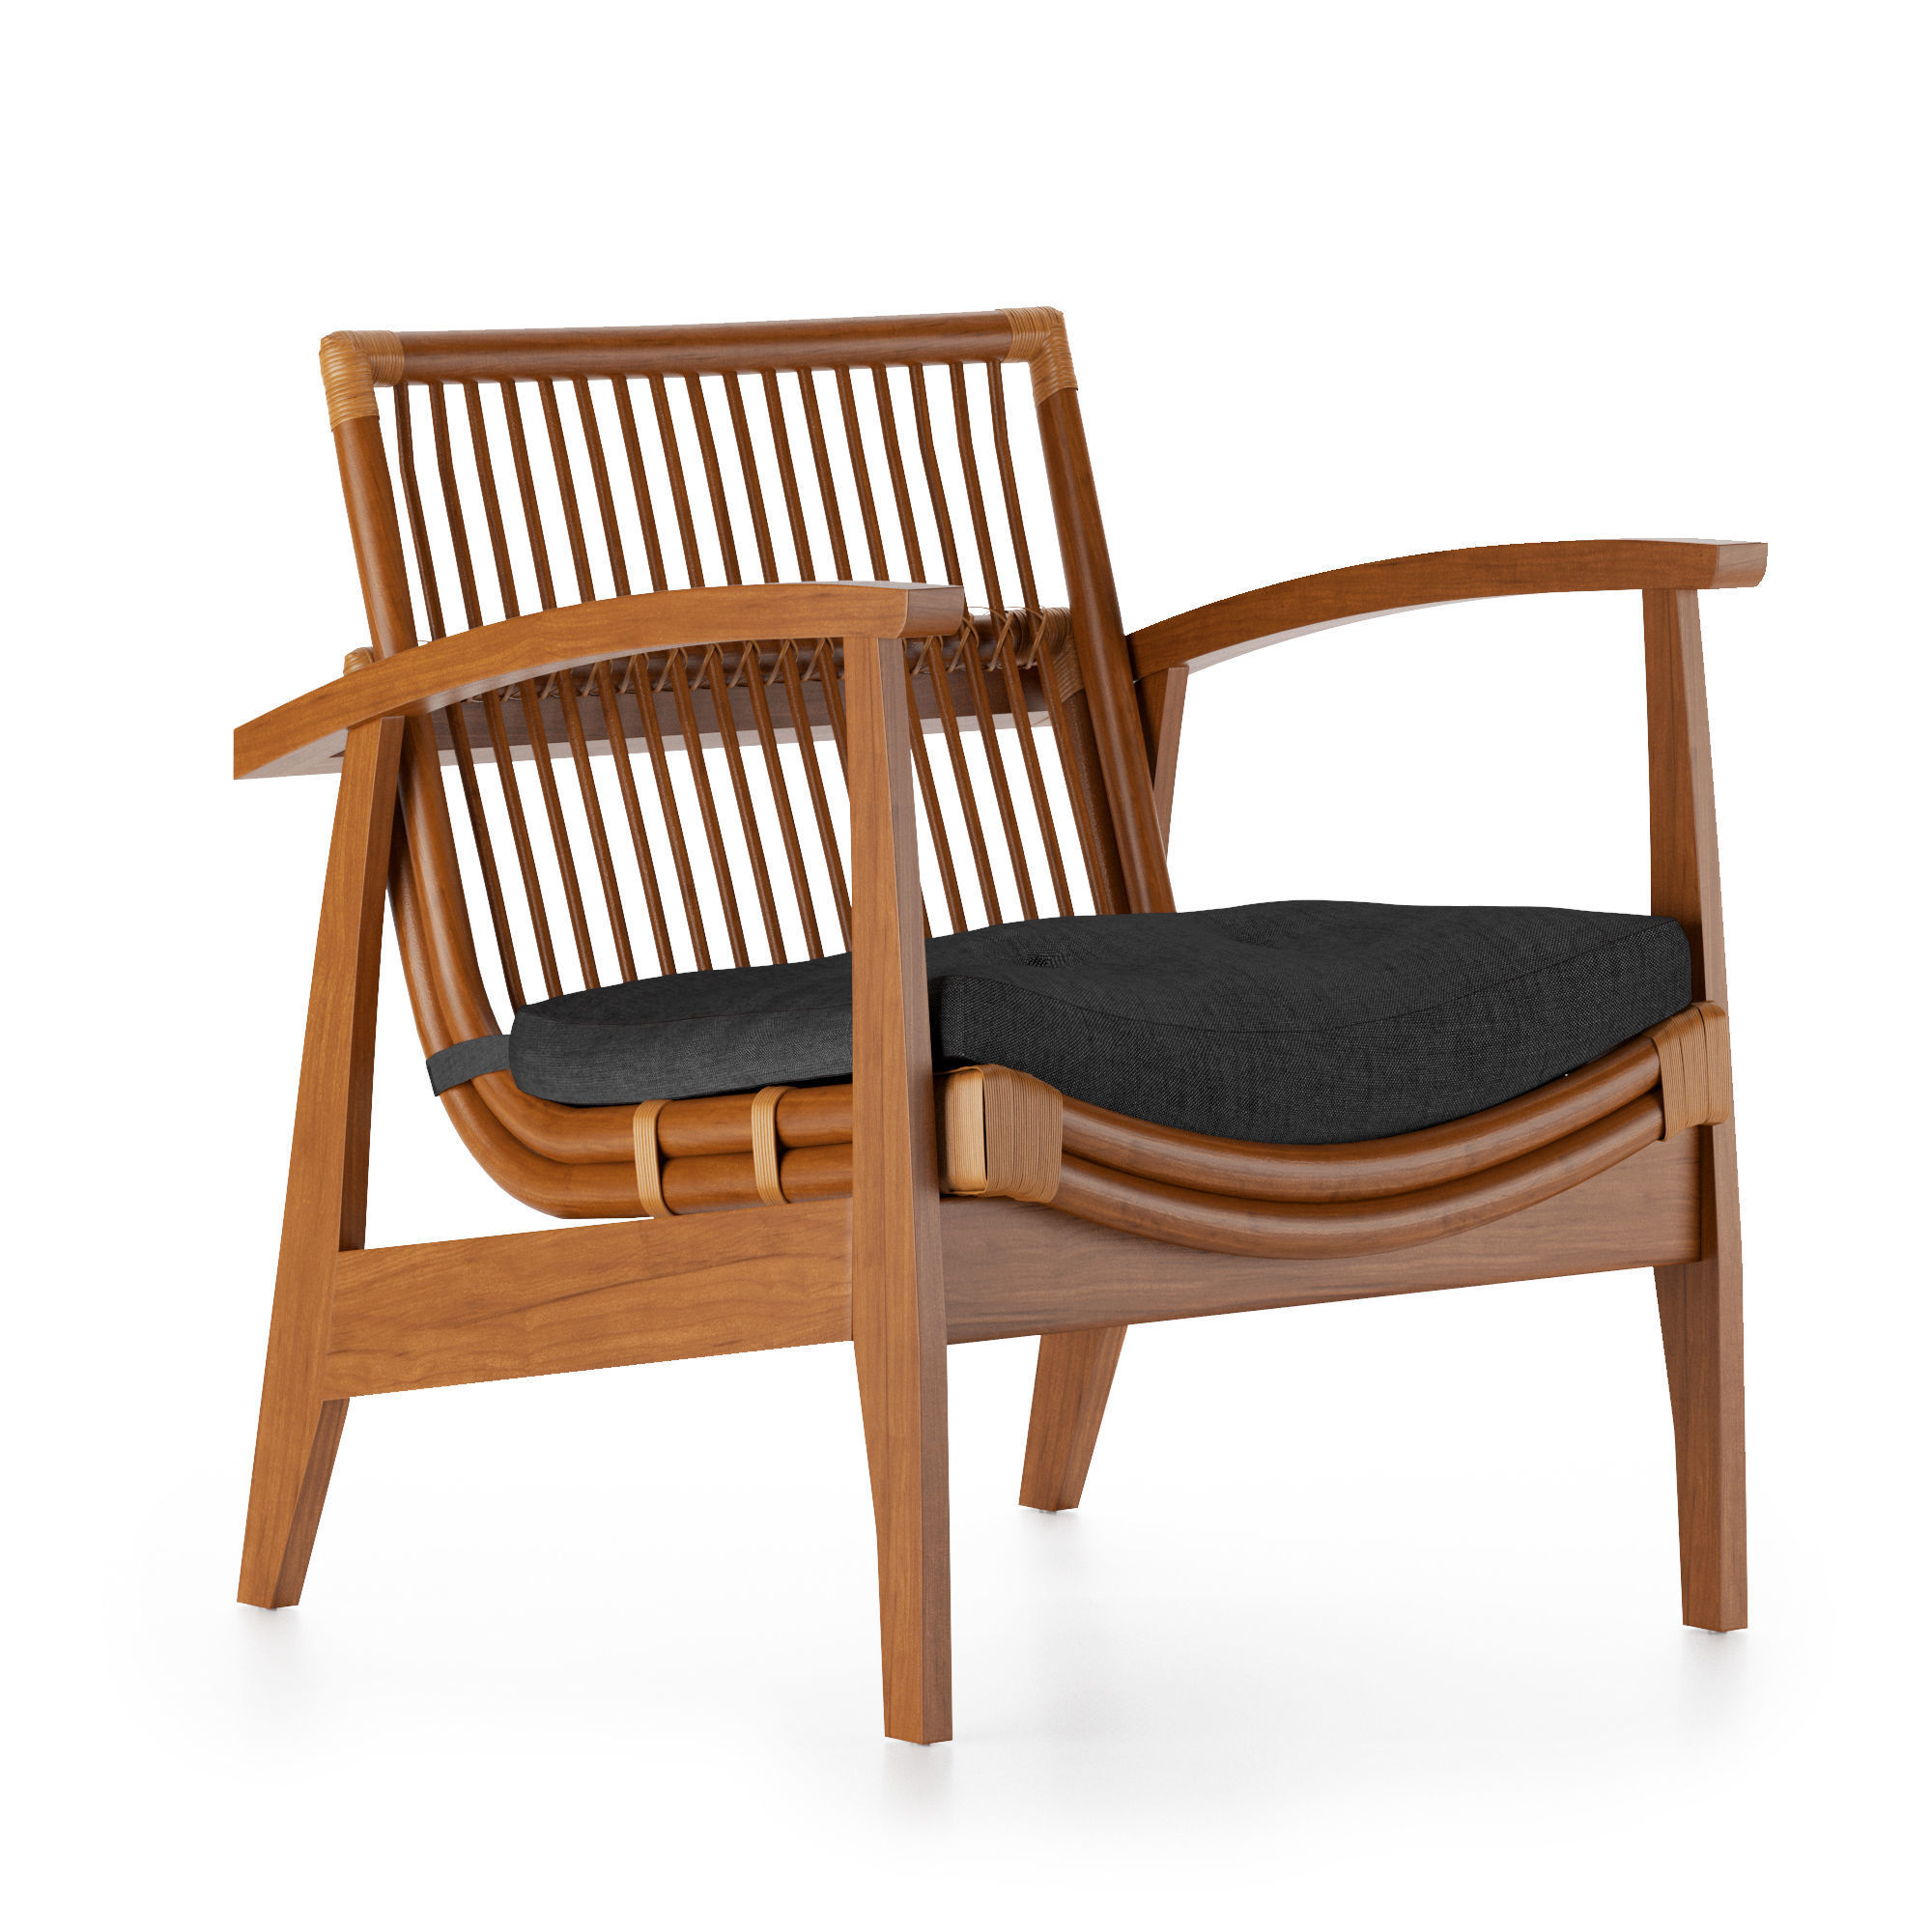 NOELIE RATTAN LOUNGE CHAIR WITH CUSHION  CB2